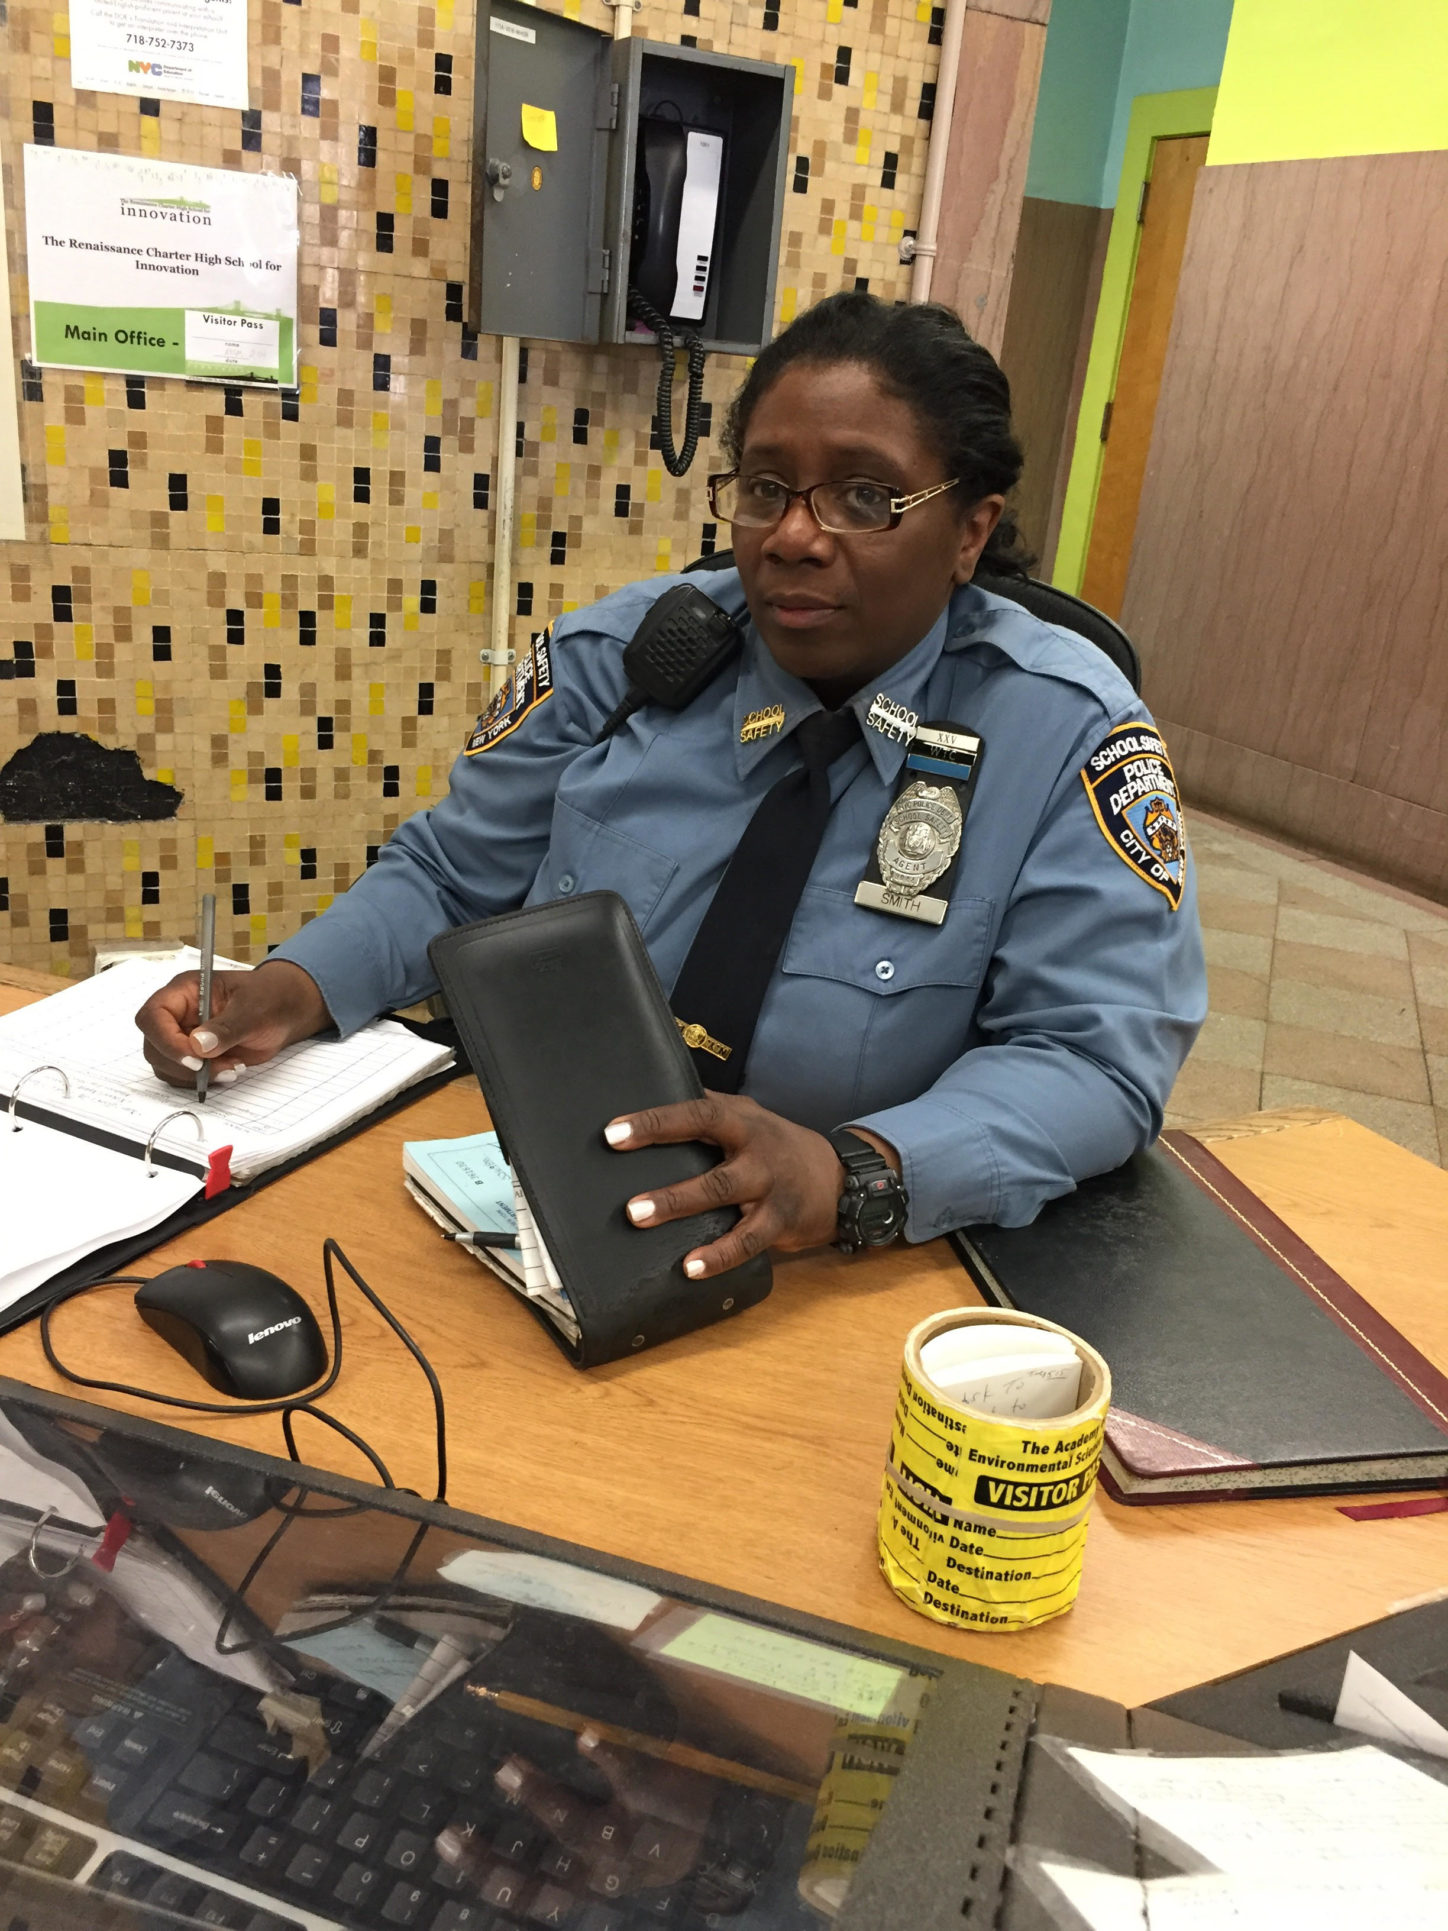 The Job of Ms. Smith: A Security Guard at Innovation